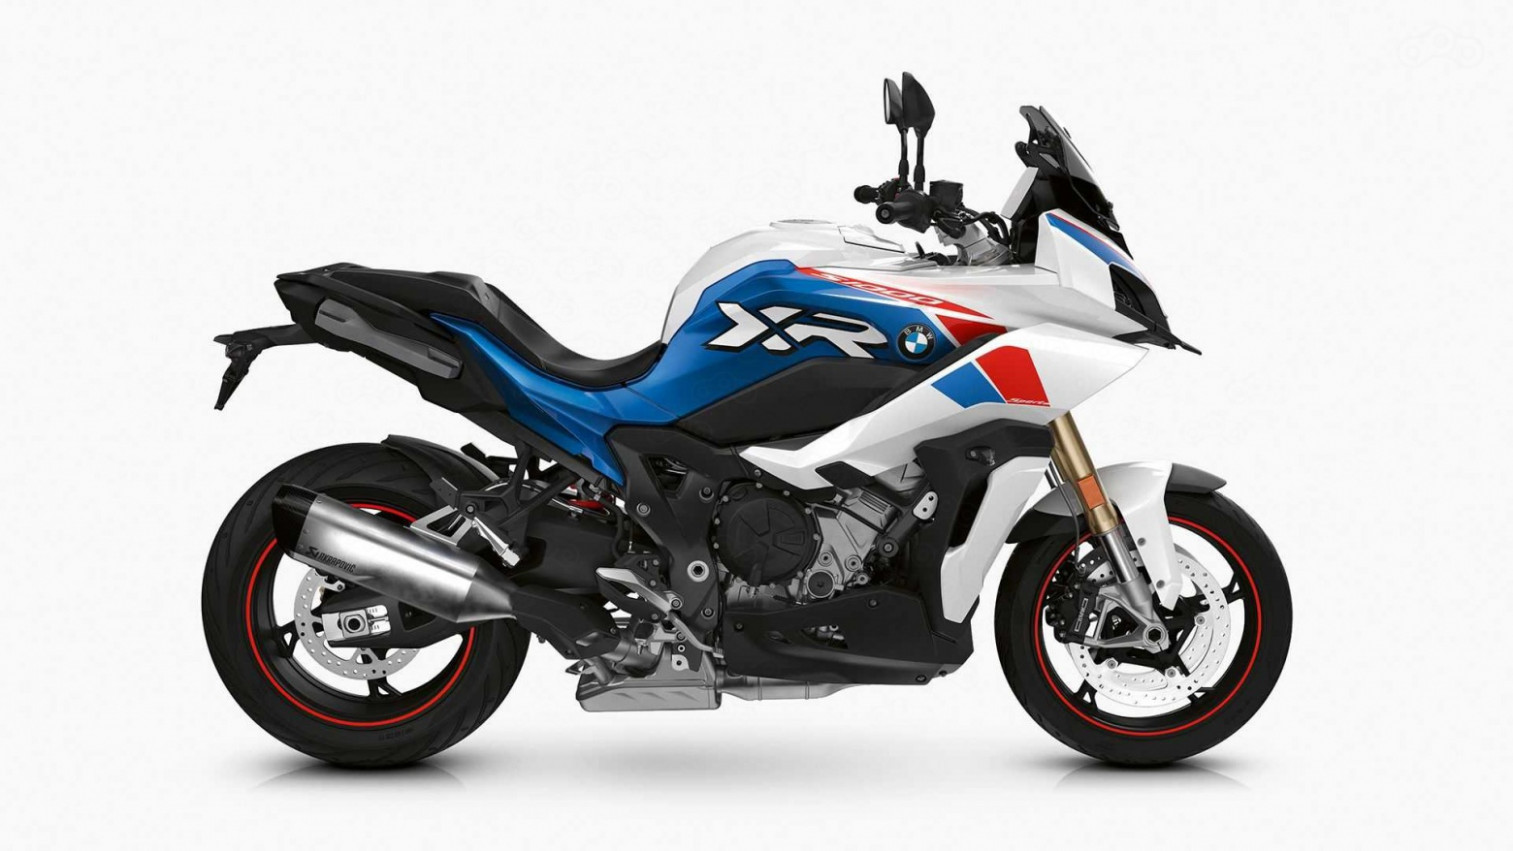 Release BMW S1000Rr 2022 Price